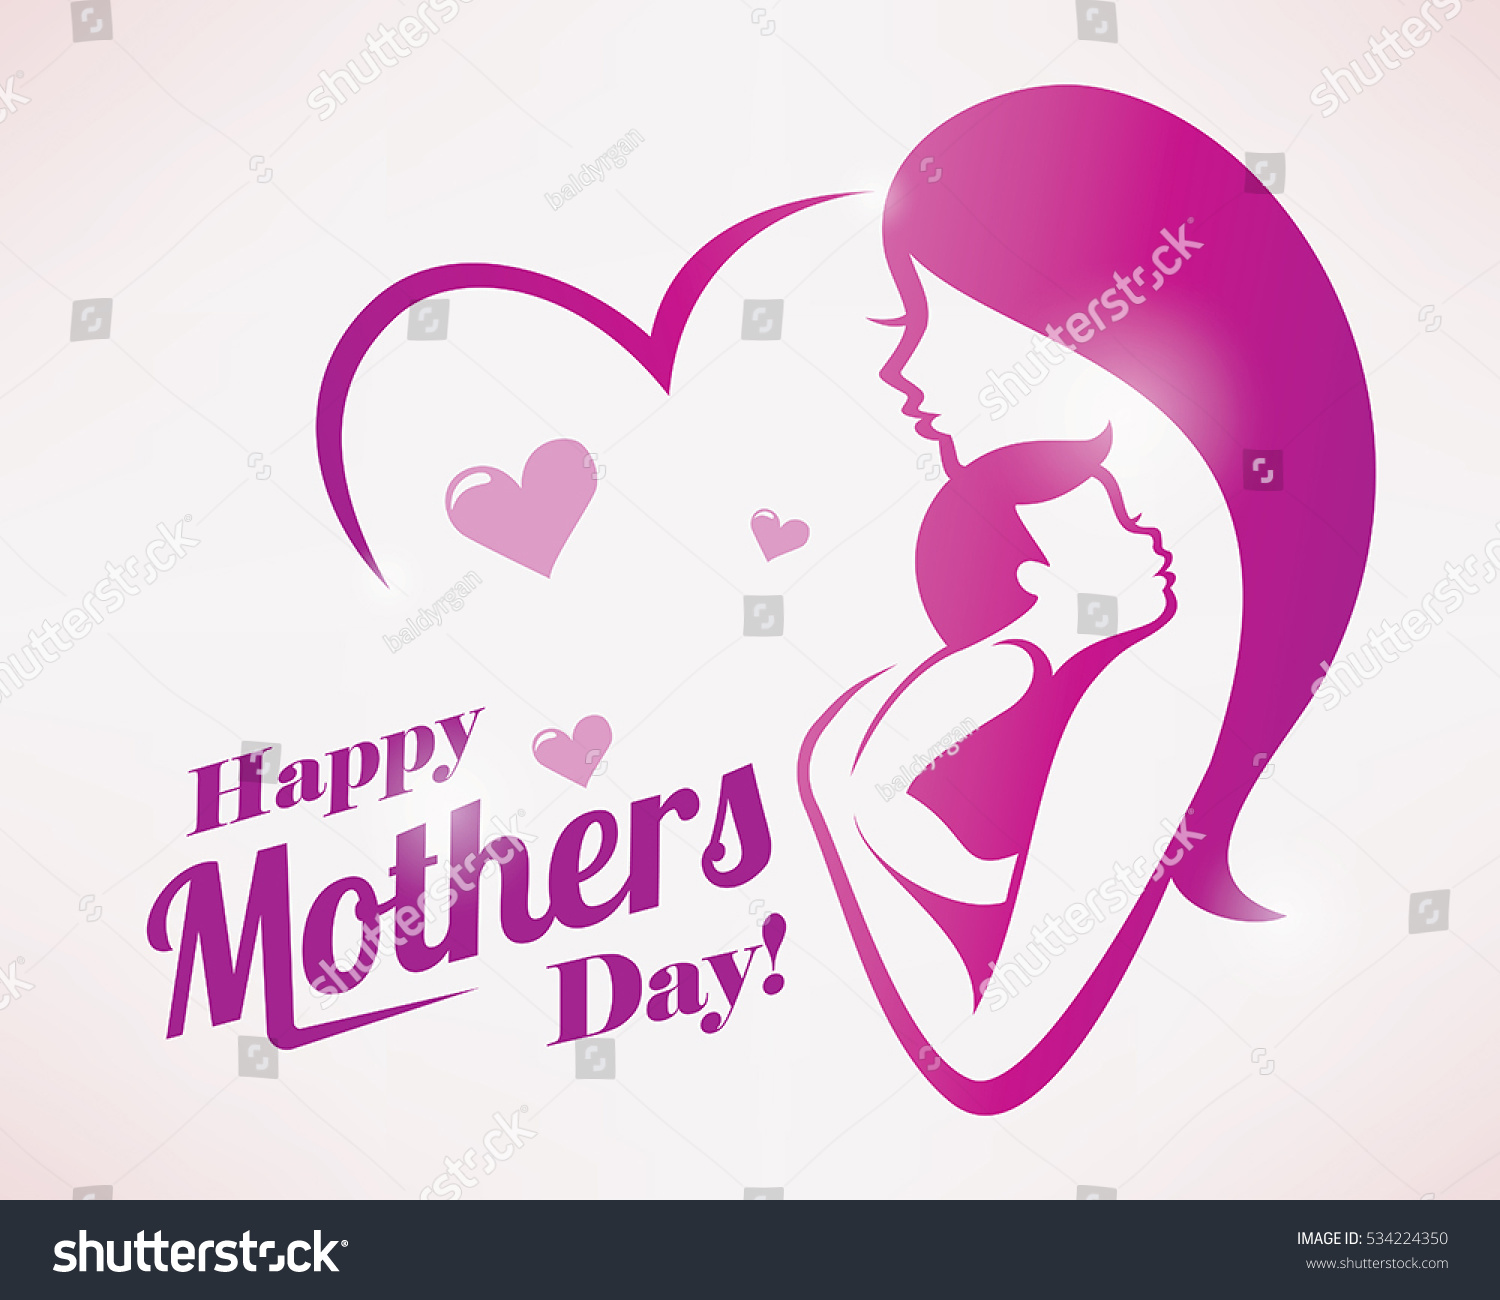 Happy Mothers Day Greeting Card Template Stylized Symbol Of Mom And Baby